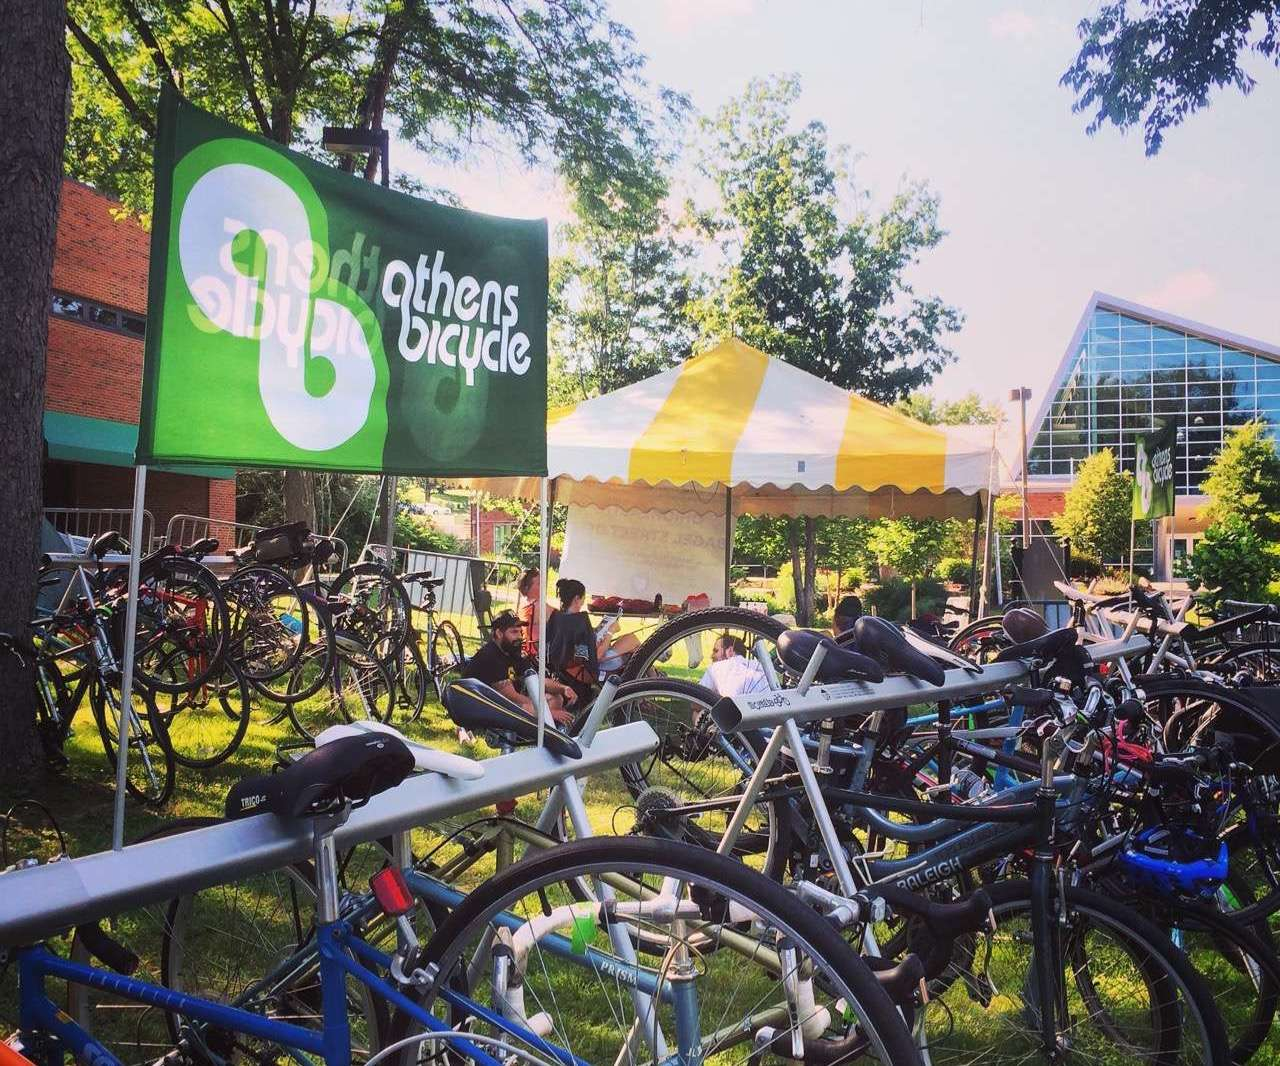 Athens Bicycle bike parking at Nelsonville Music Festival